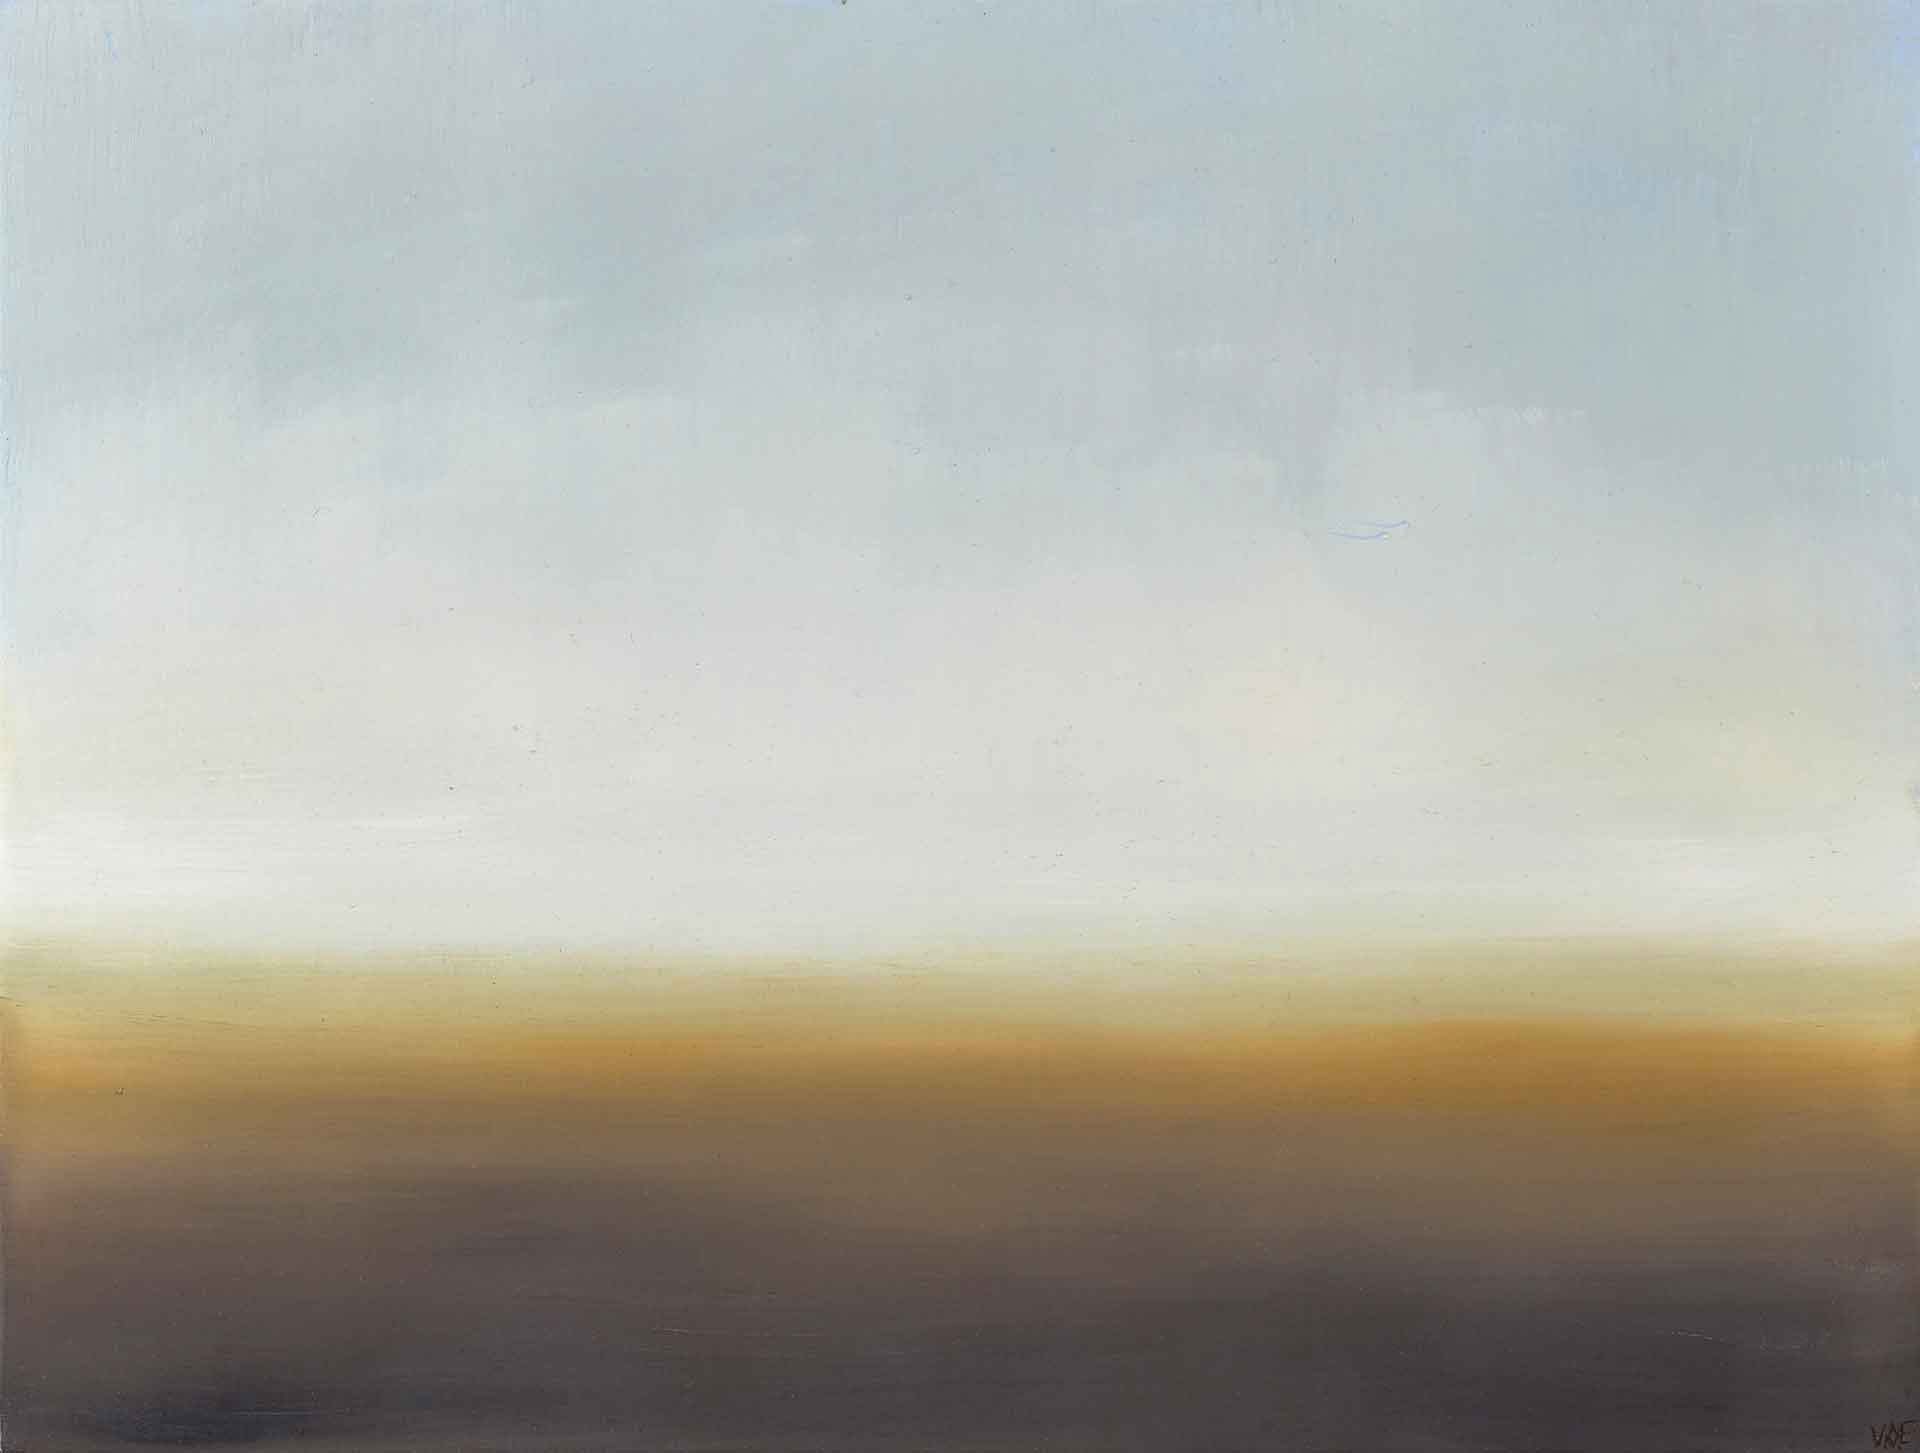 Misty Light Between The Mountains and Sea Off South Uist In The Western Isles - Landscape Painting By Victoria Orr Ewing